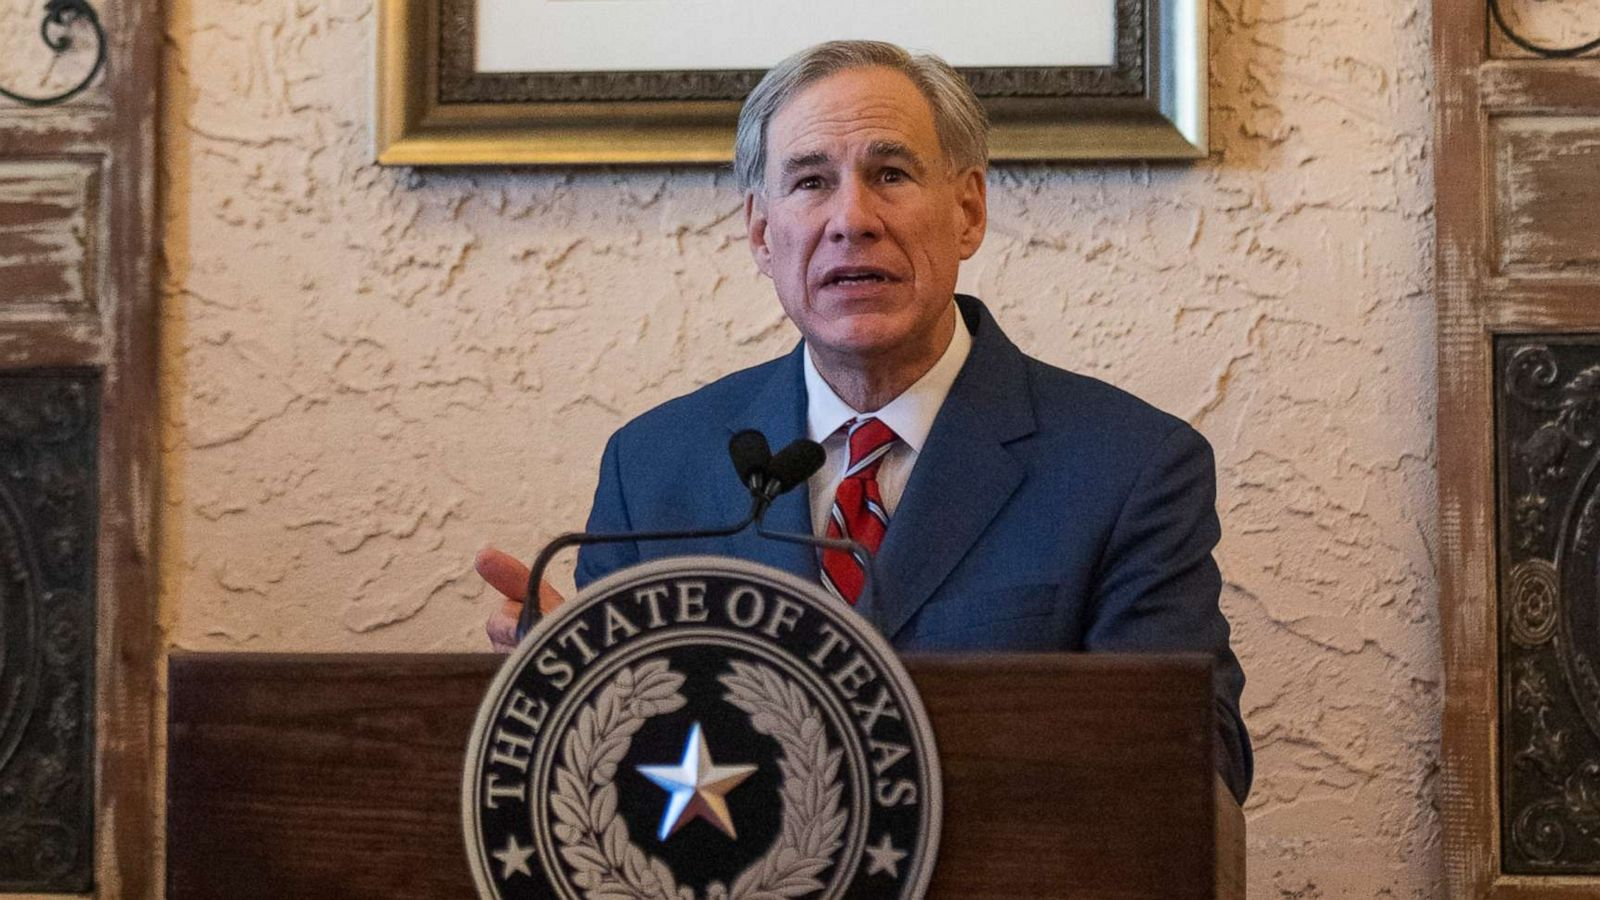 Battle emerges between Biden administration and Texas Gov. Greg Abbott over  migrant arrivals, COVID-19 testing - ABC News